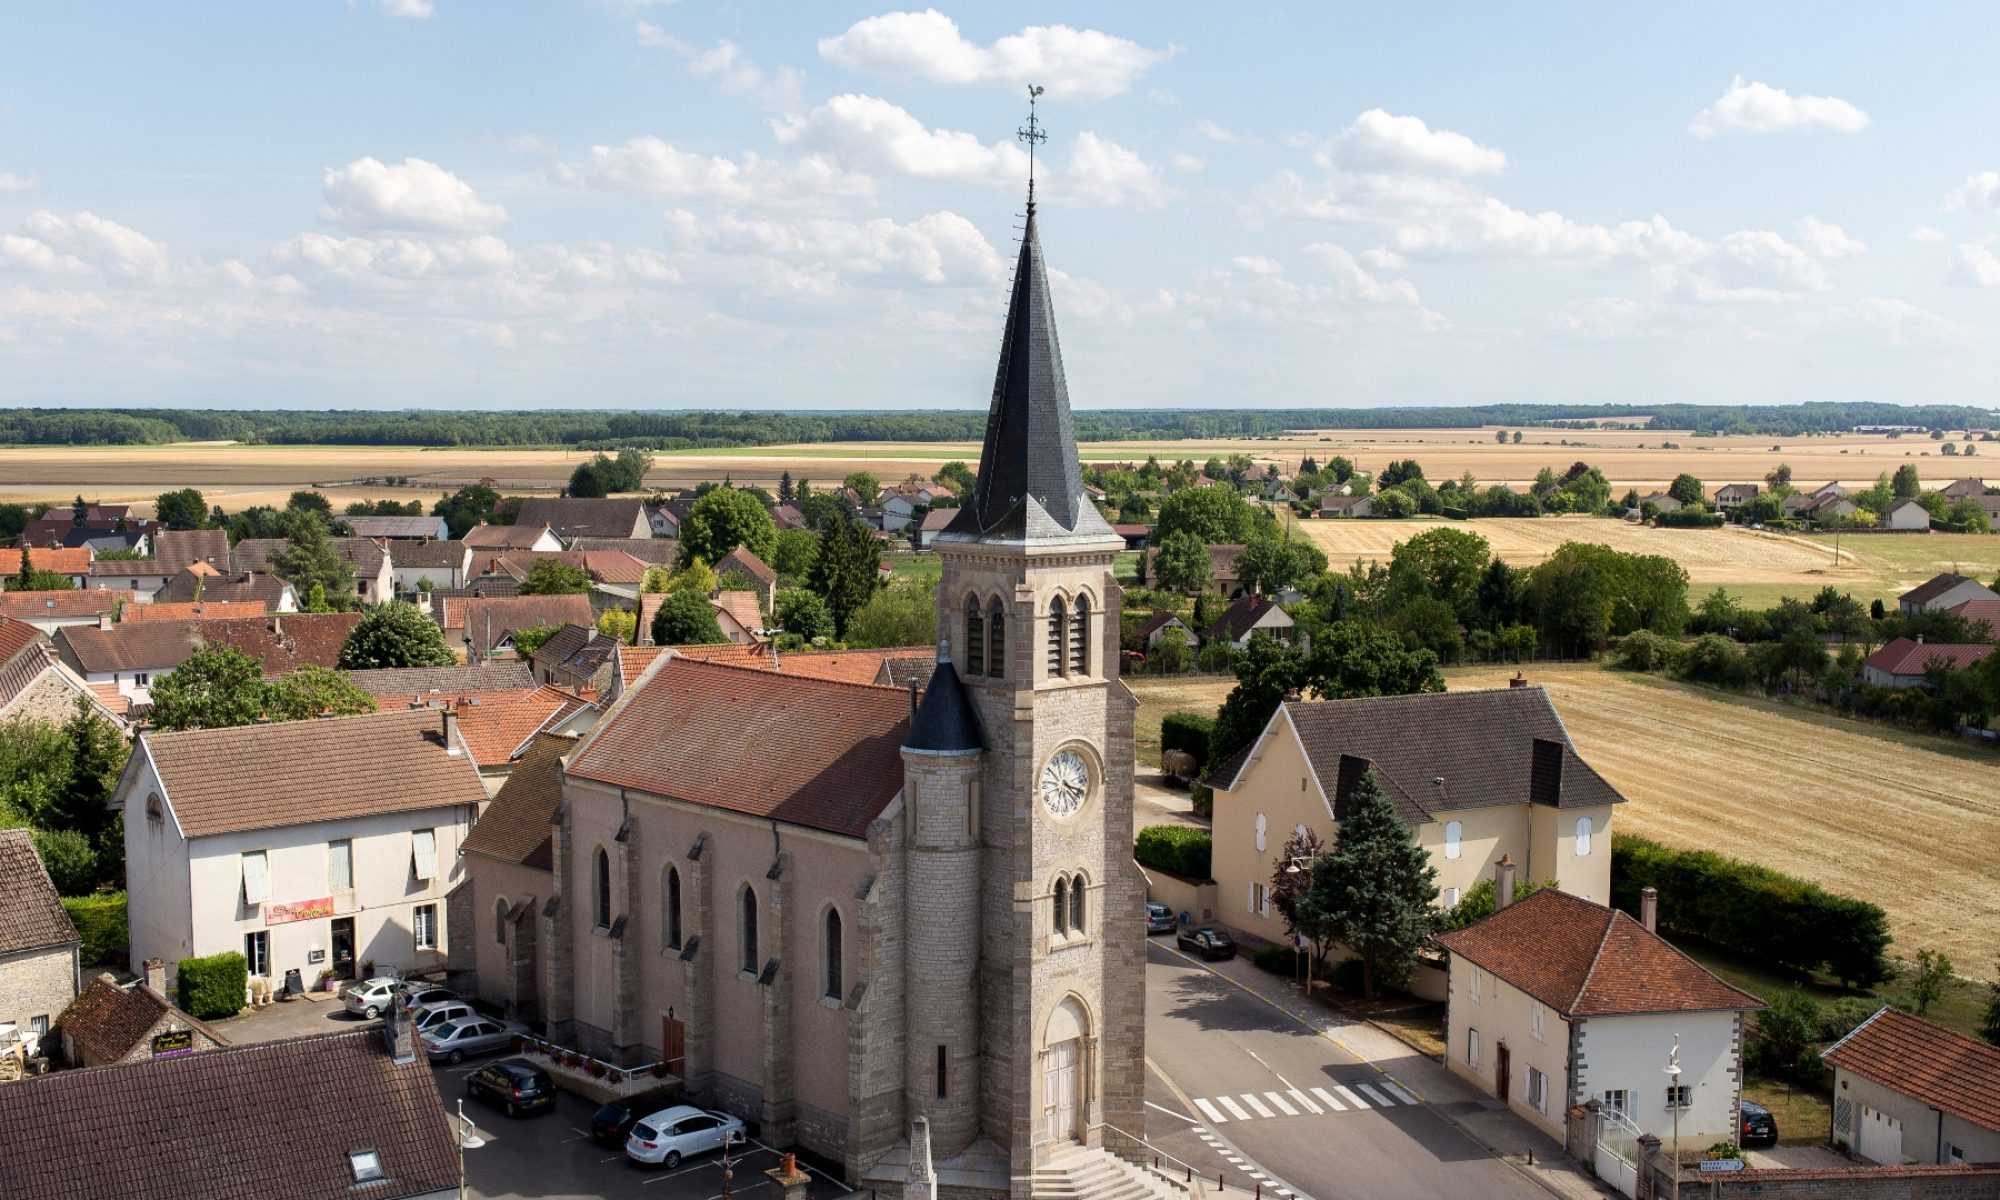 Saulon-la-Chapelle